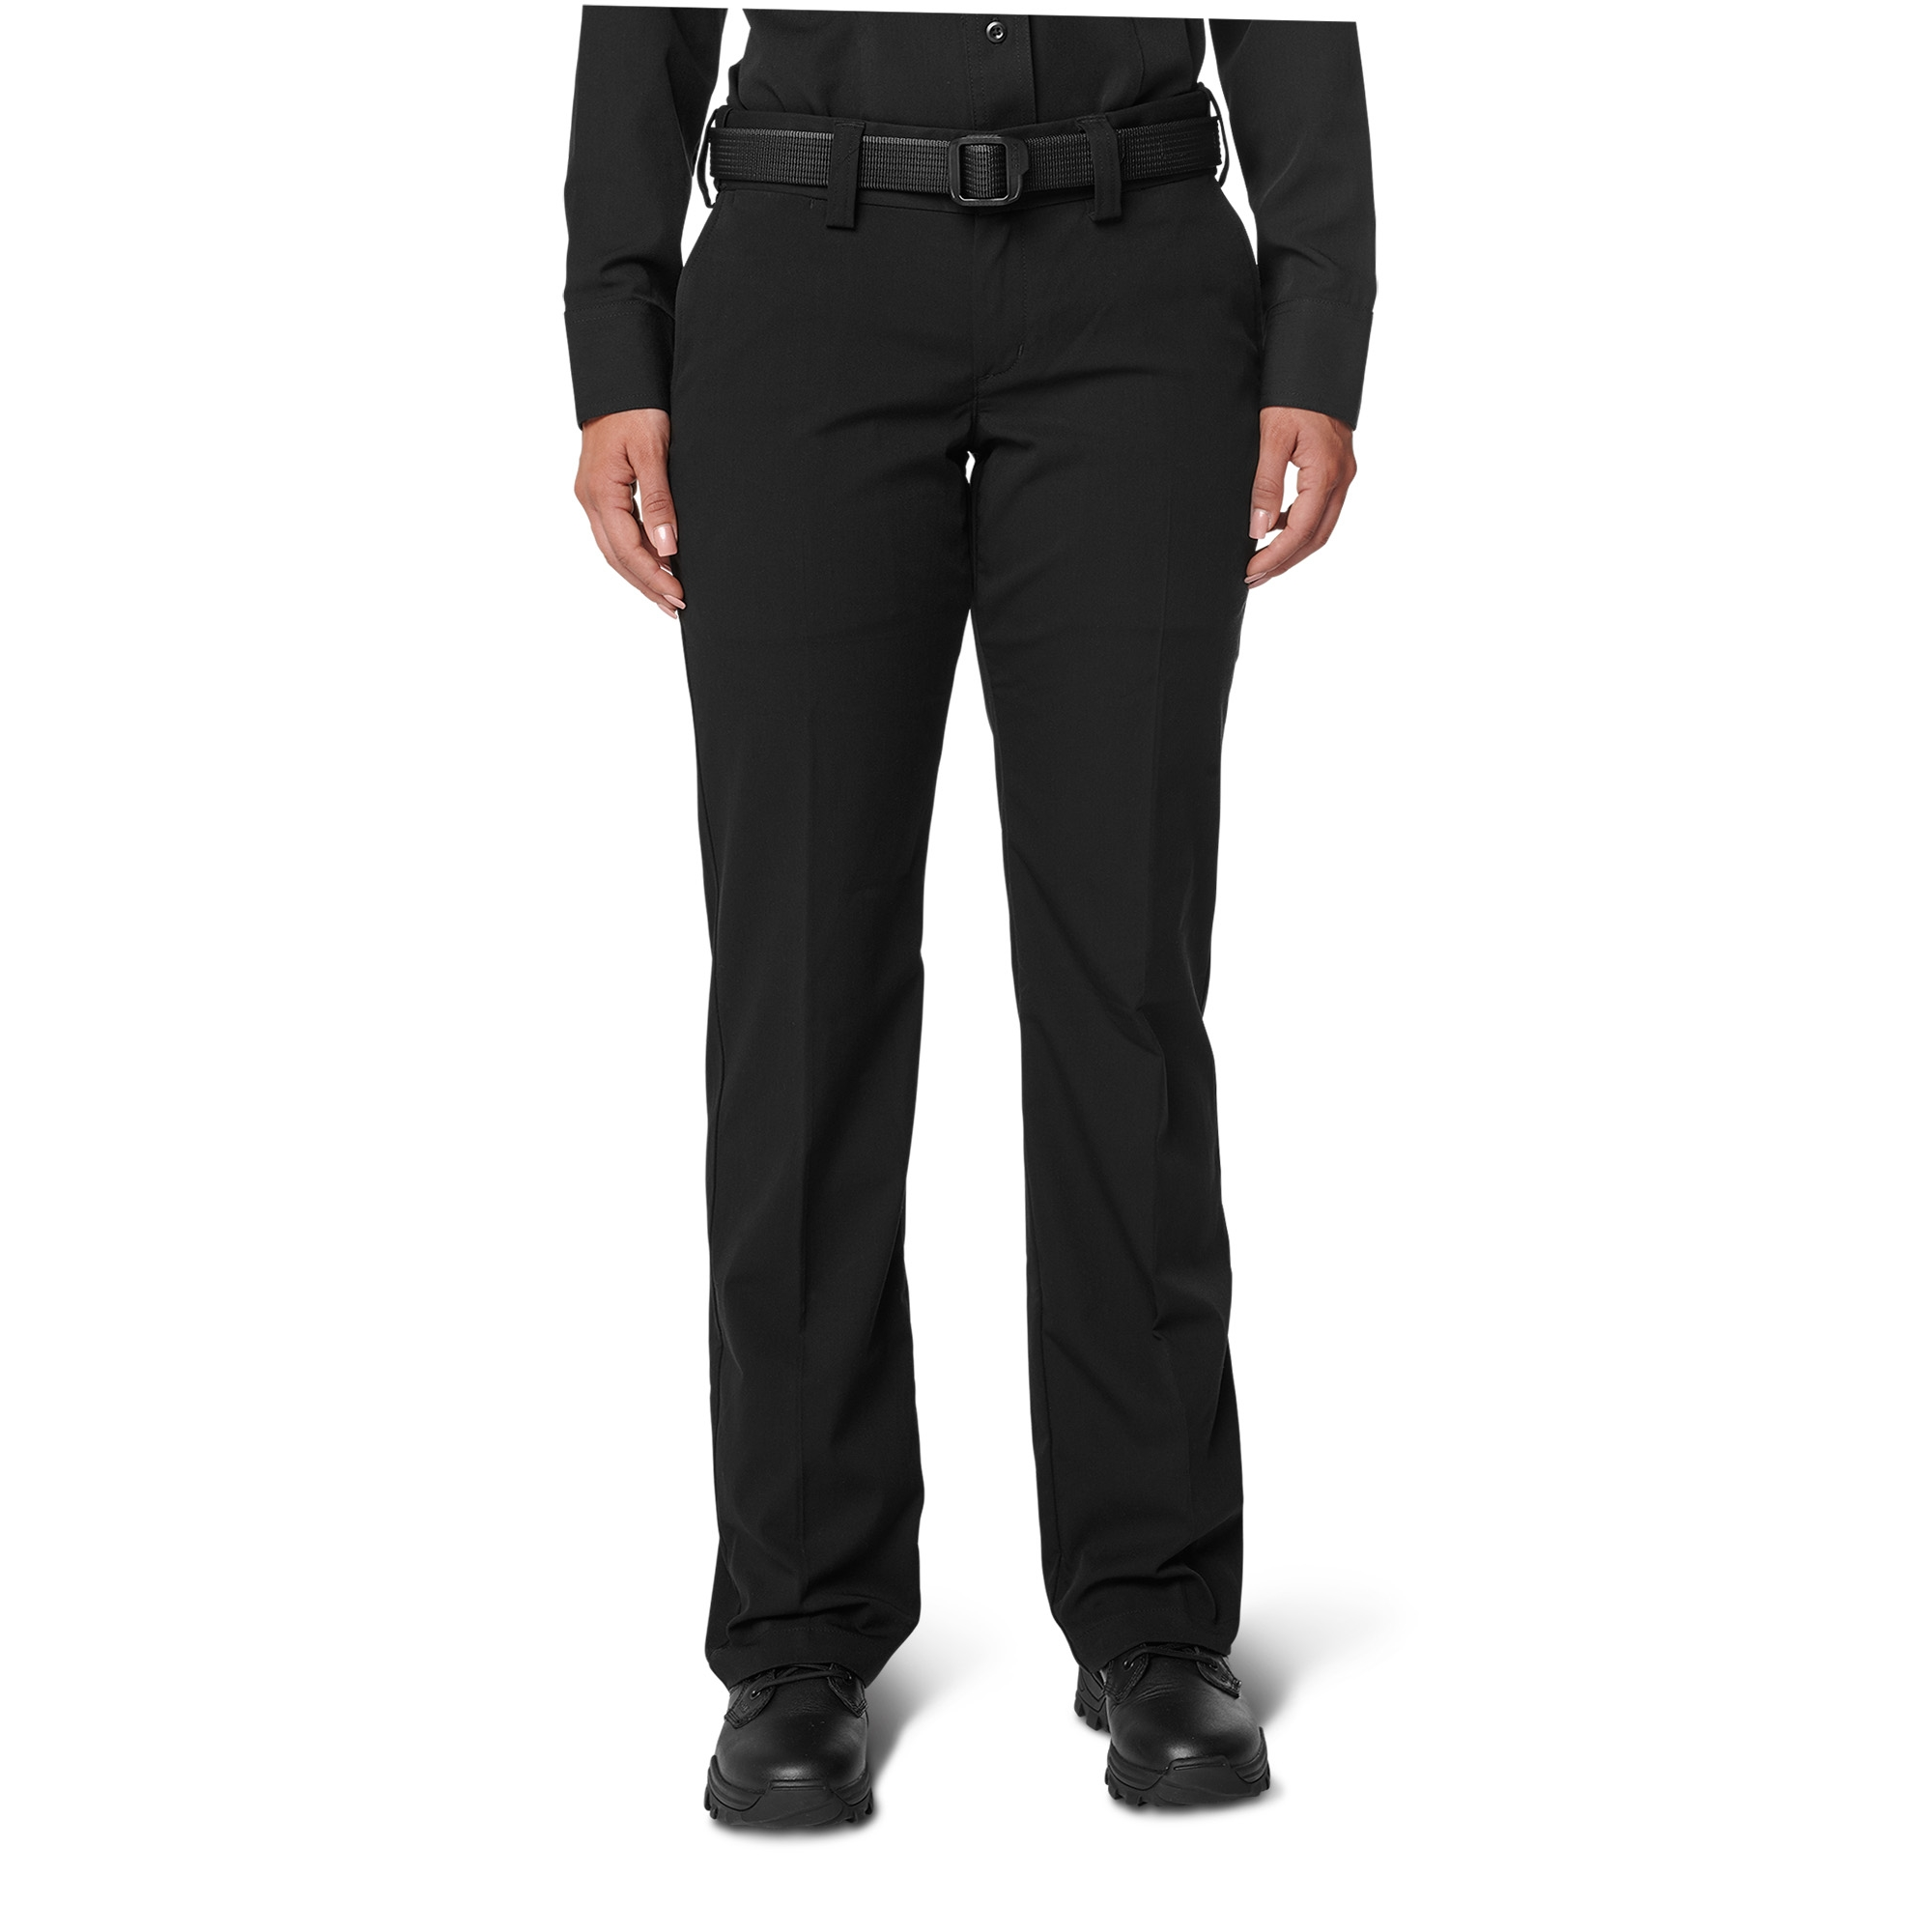 2839a6ca03e36 Women's Class A Flex-Tac® Poly/Wool Twill Cargo Pant - 5.11 Tactical